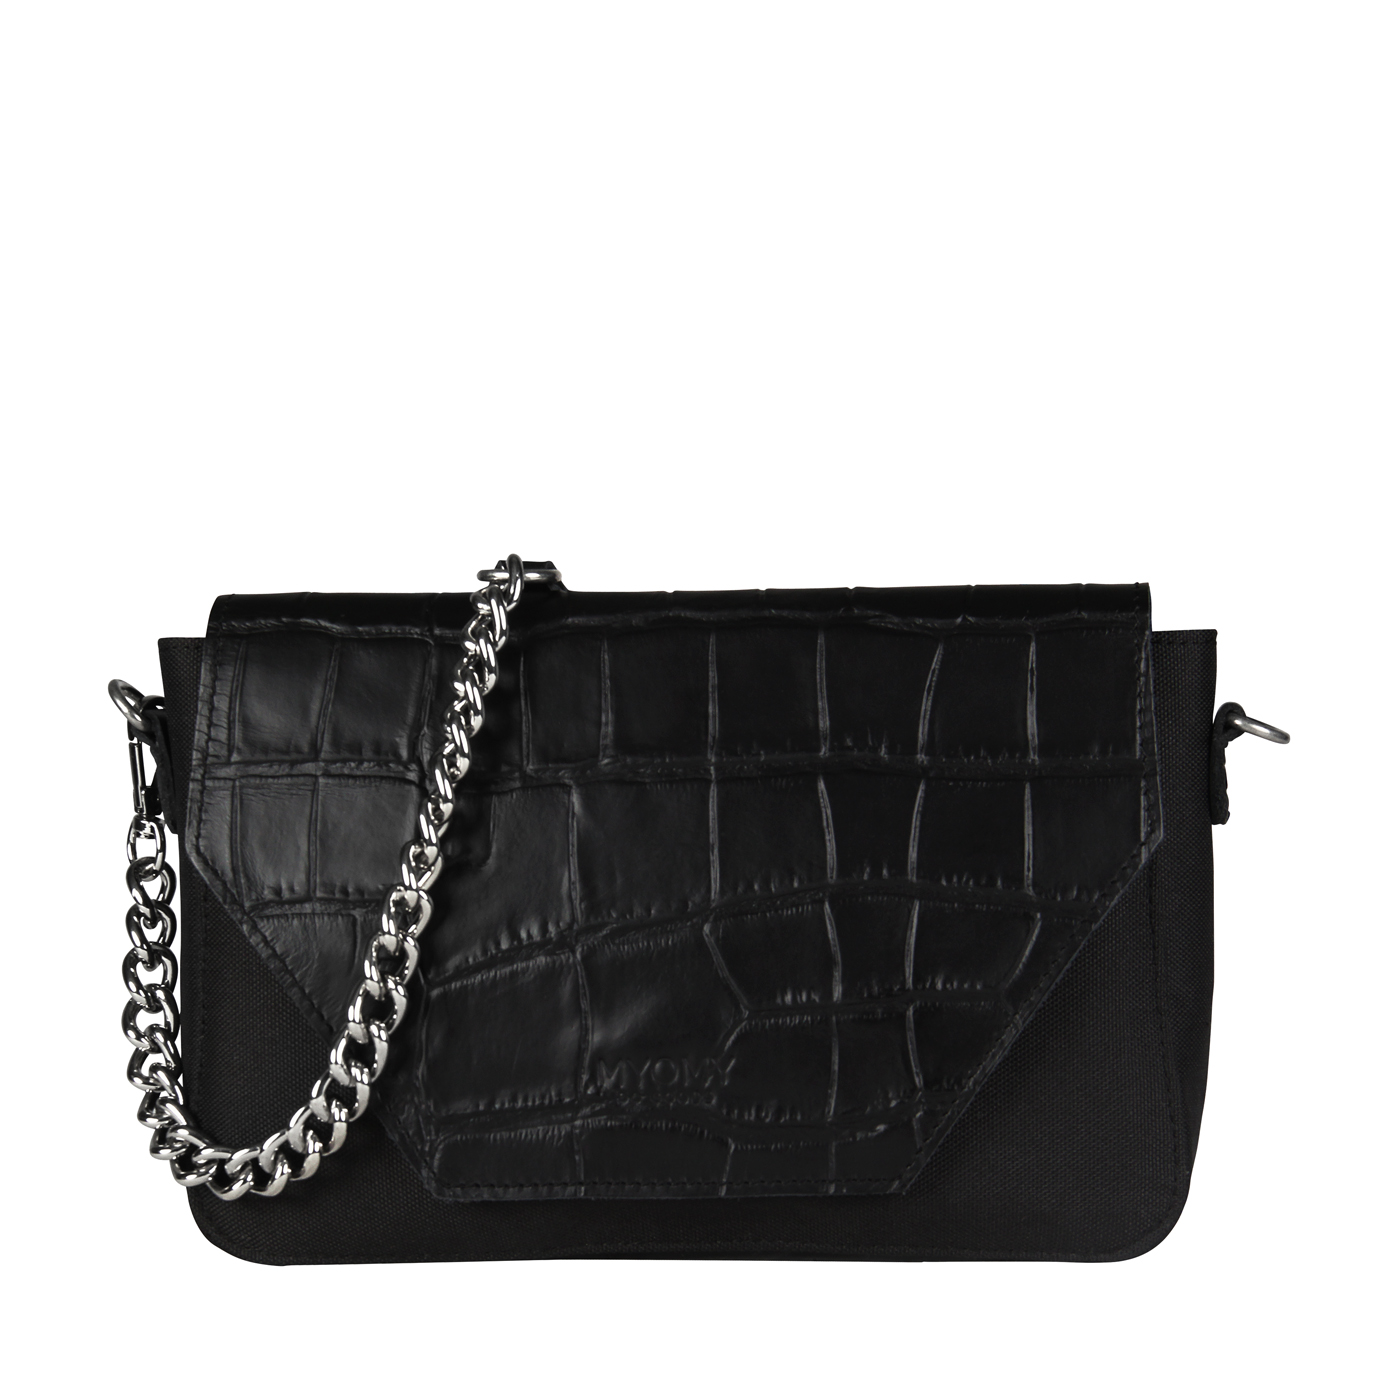 MY TREASURE BAG Mini – croco black & recycled plastic